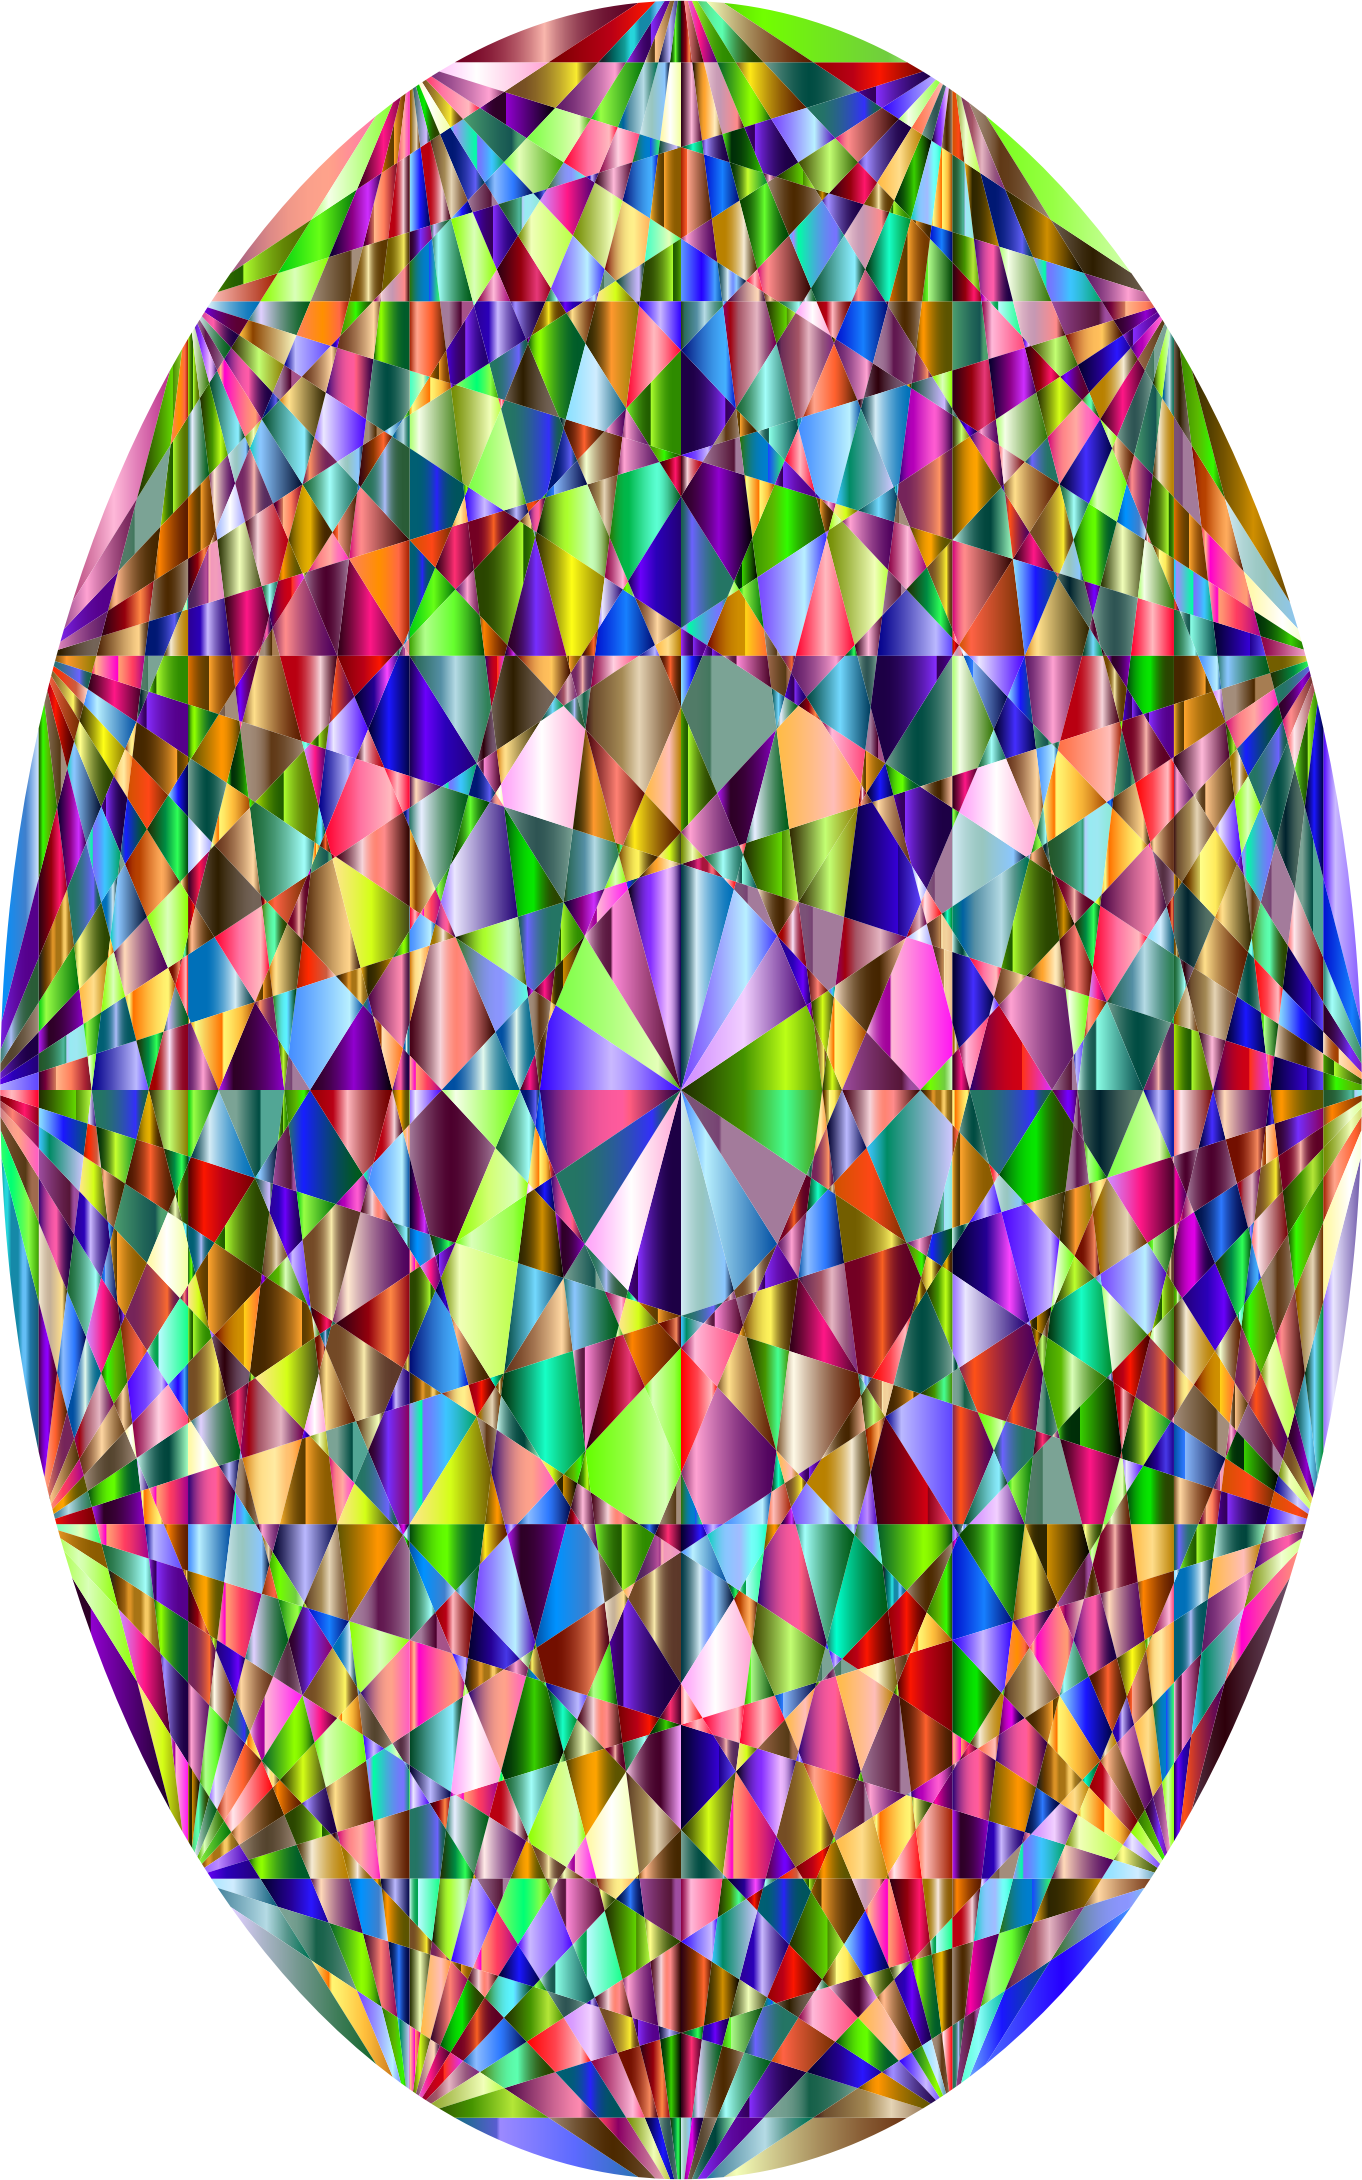 Clipart - Prismatic Easter Egg 6